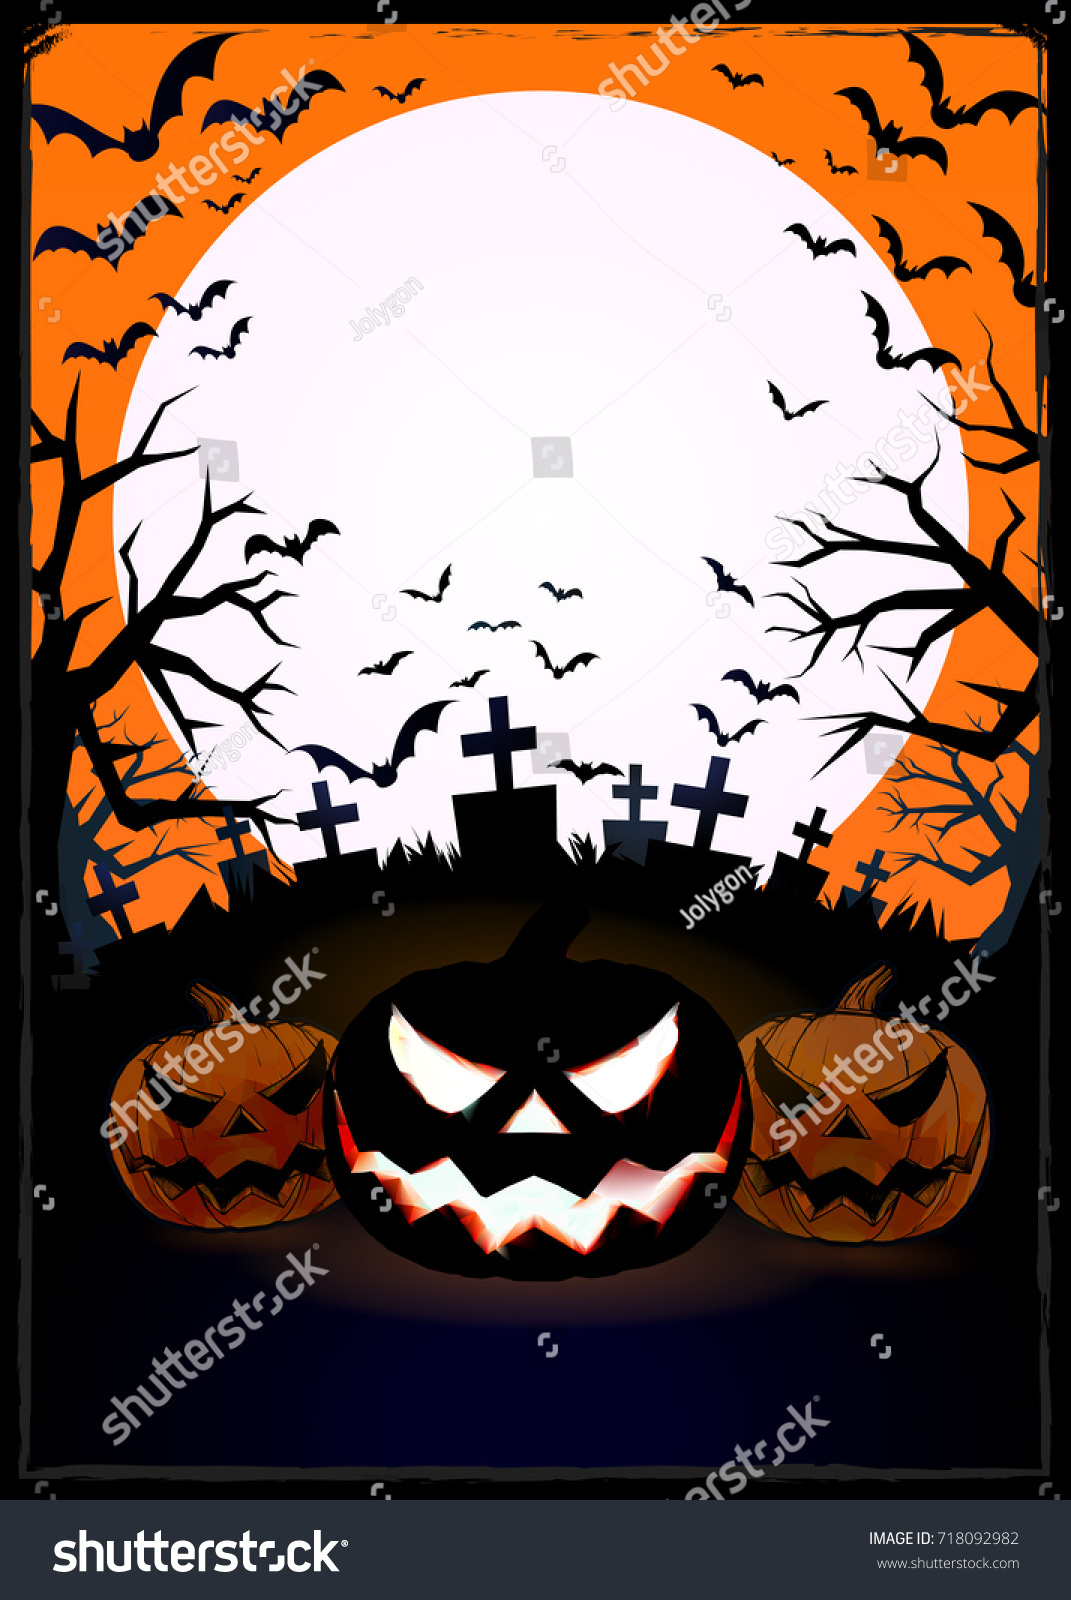 Orange Grungy Halloween Background With Scary Pumpkins Full Moon